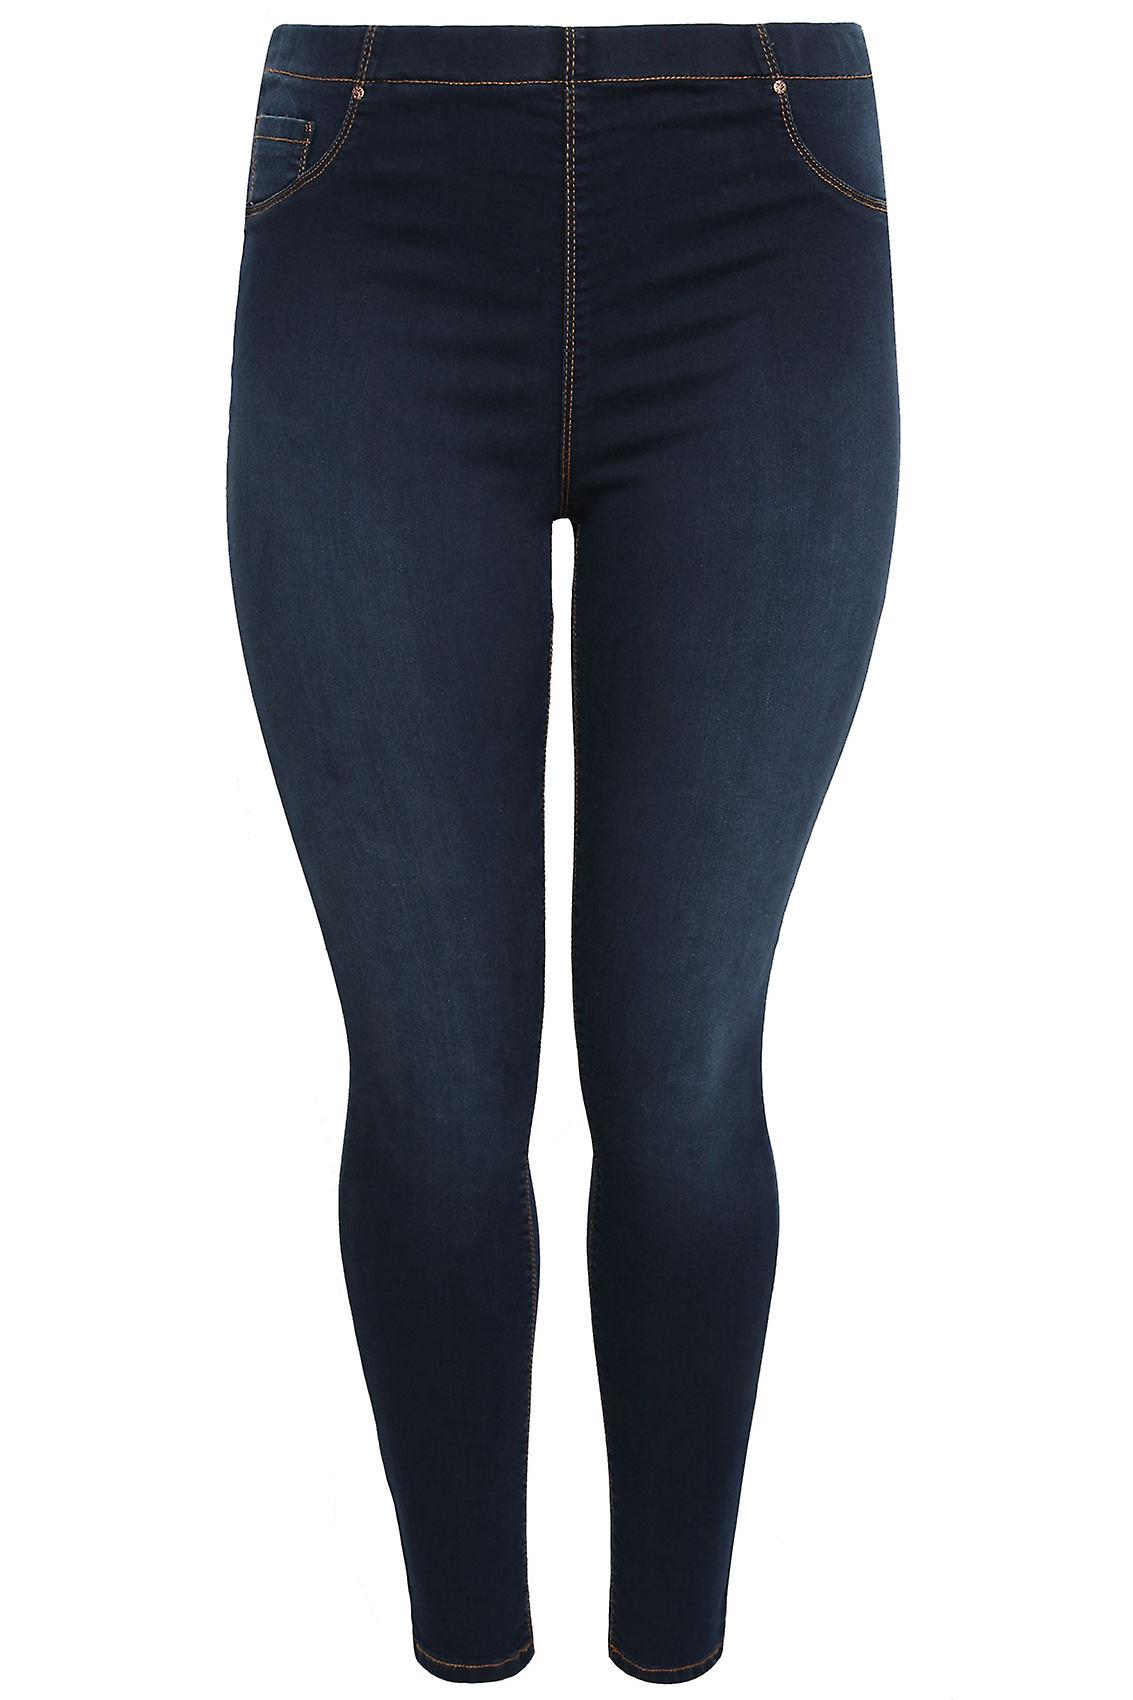 Indigo Blue Denim Jeggings With Faded Leg Detail